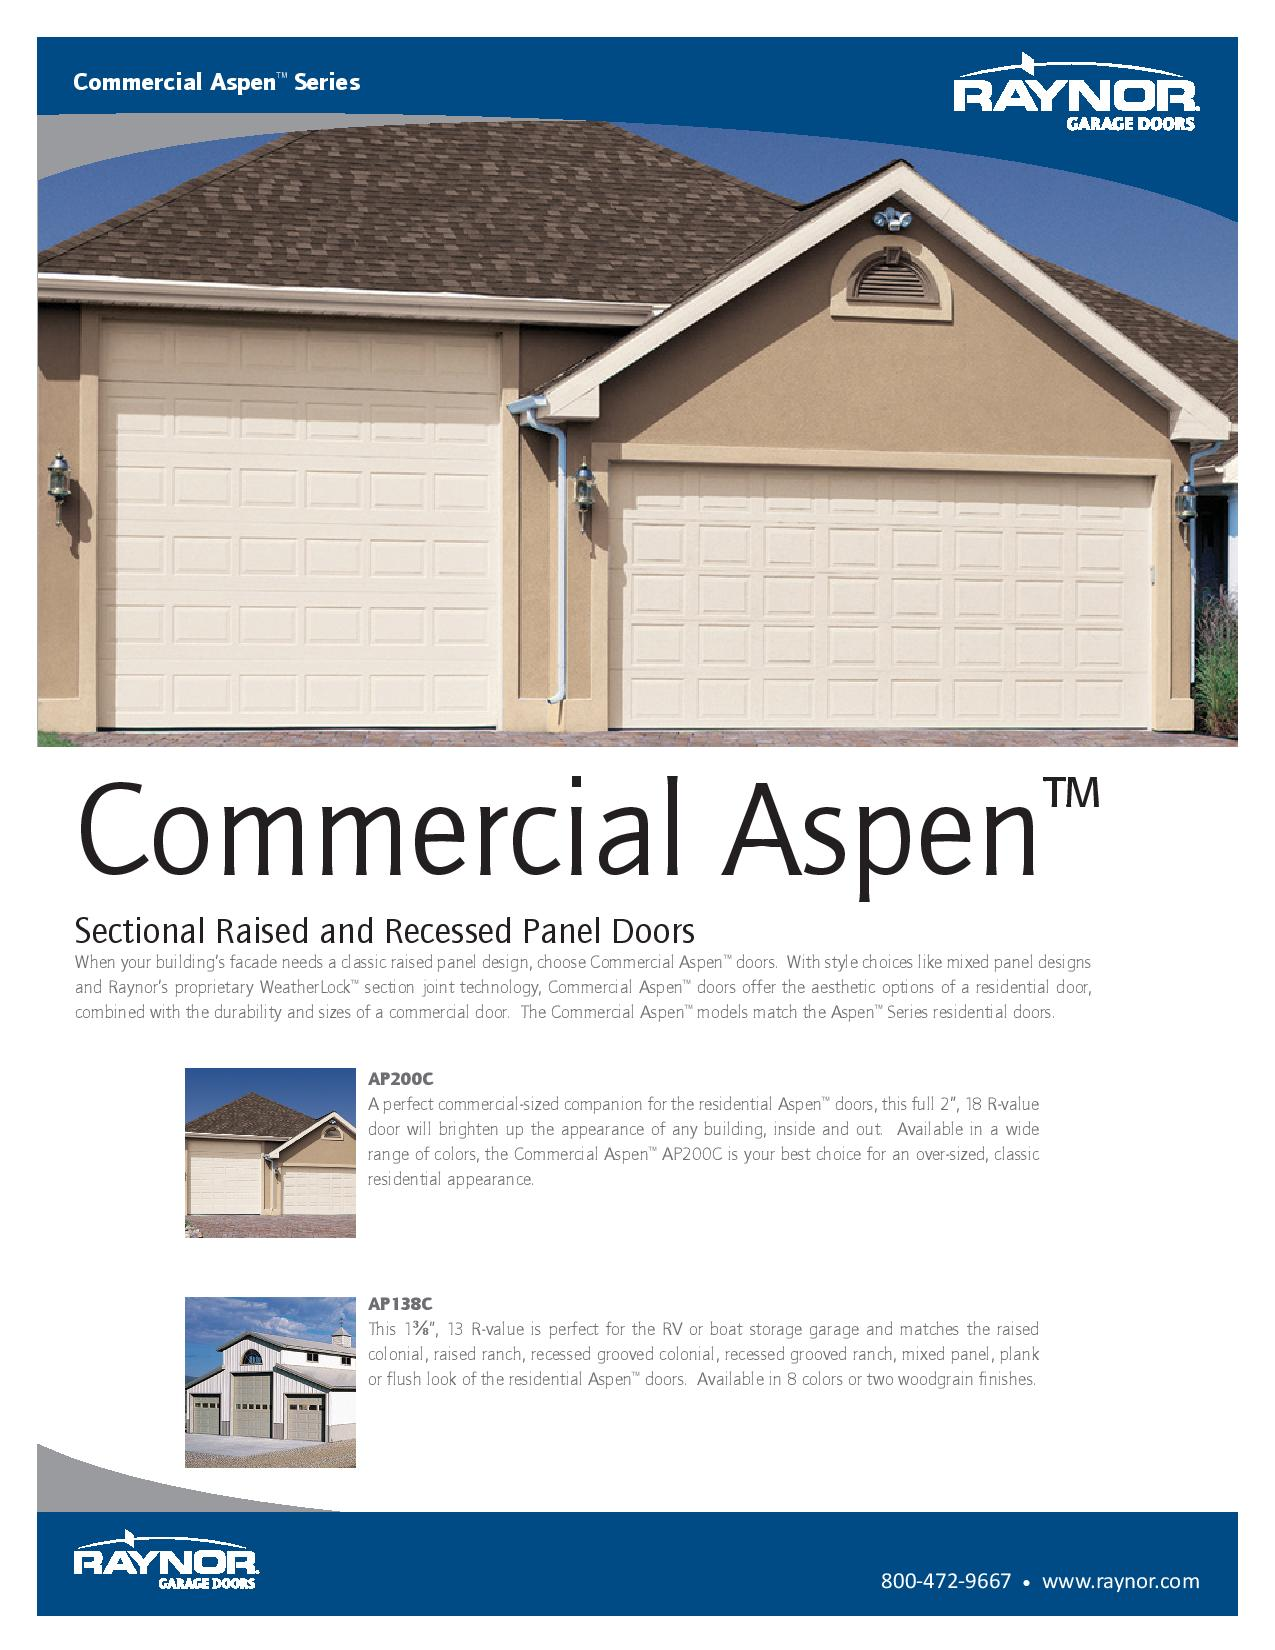 Commercial Aspen Traditional Style Garage Doors For